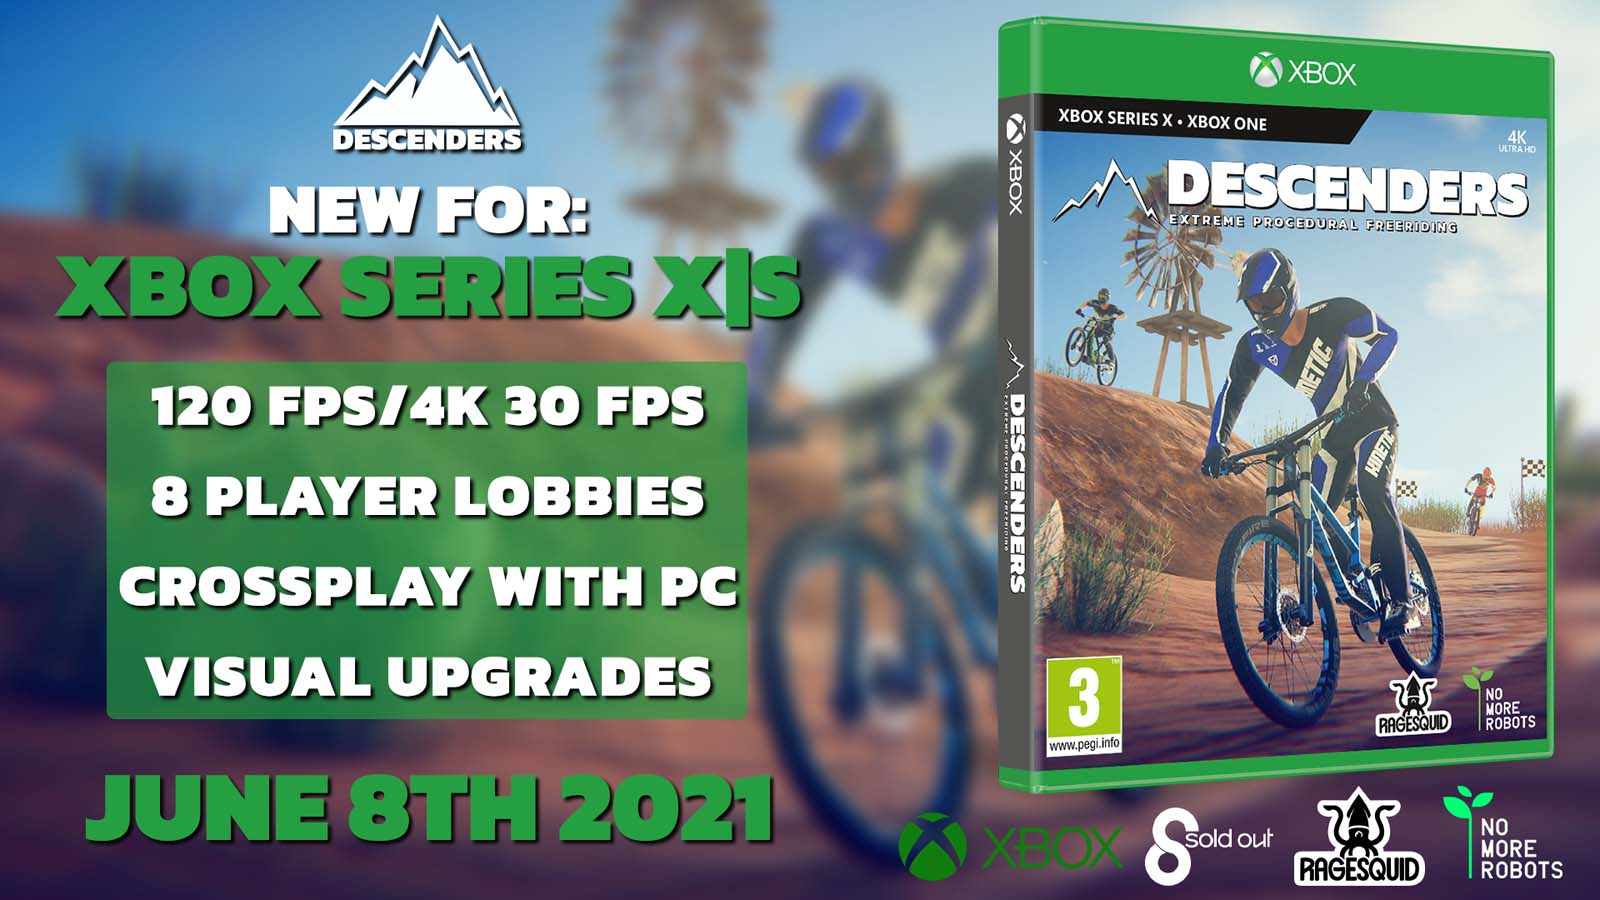 Descenders rides onto Series XS